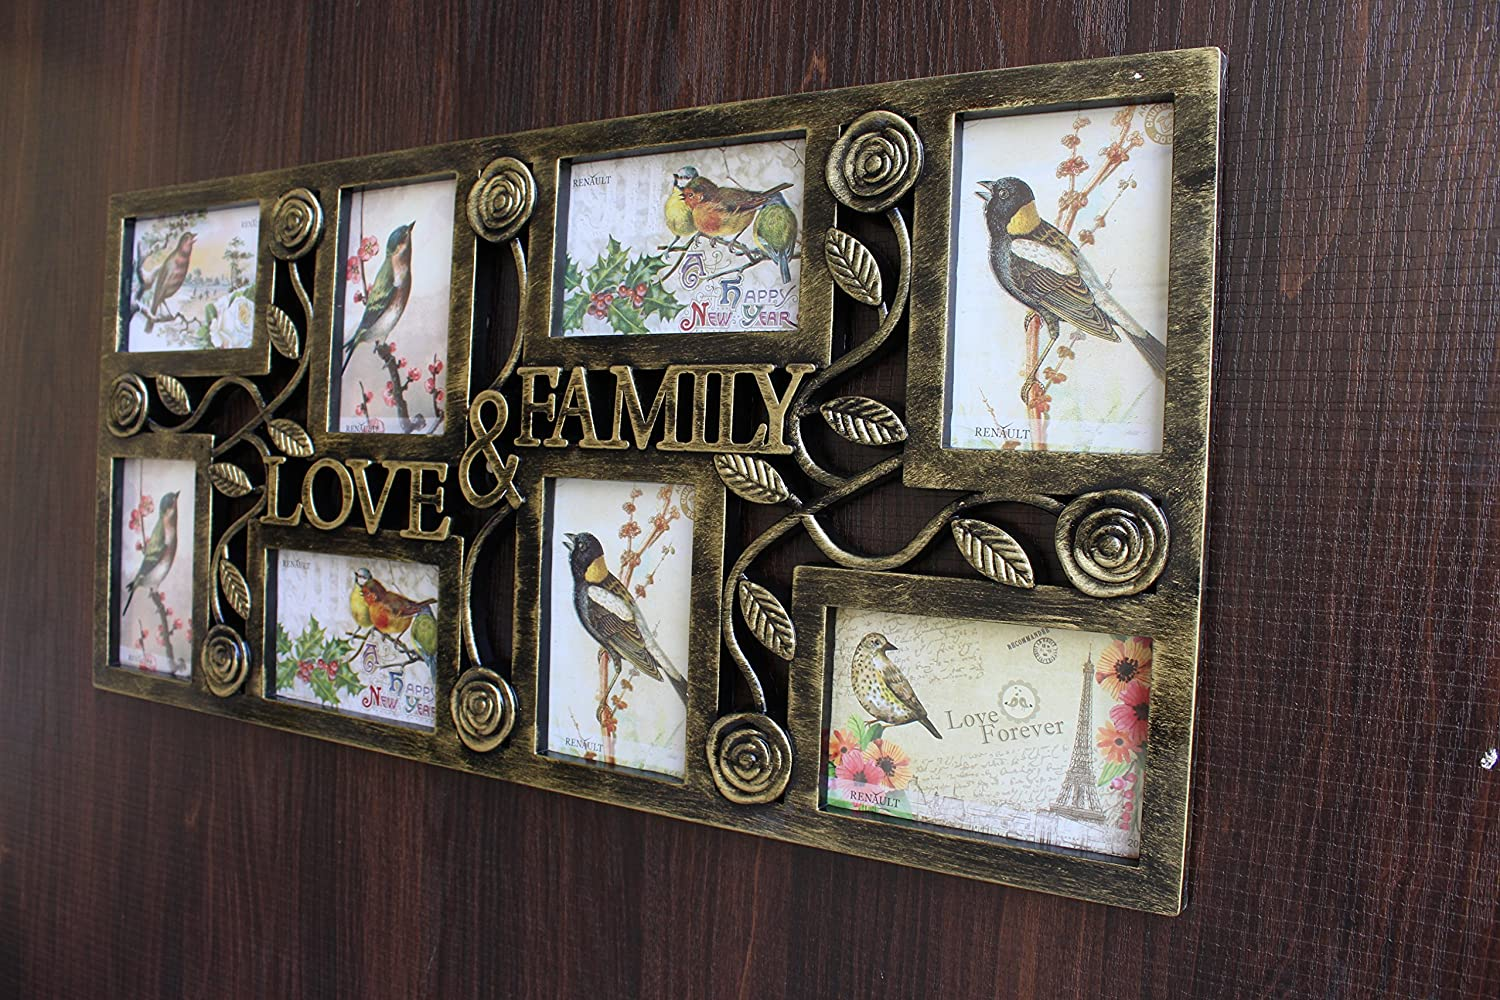 aa6d012b036 Buy FunkyTradition Wooden Texture Love and Family Frames for 8 Photos (70cm  wide) Online at Low Prices in India - Amazon.in